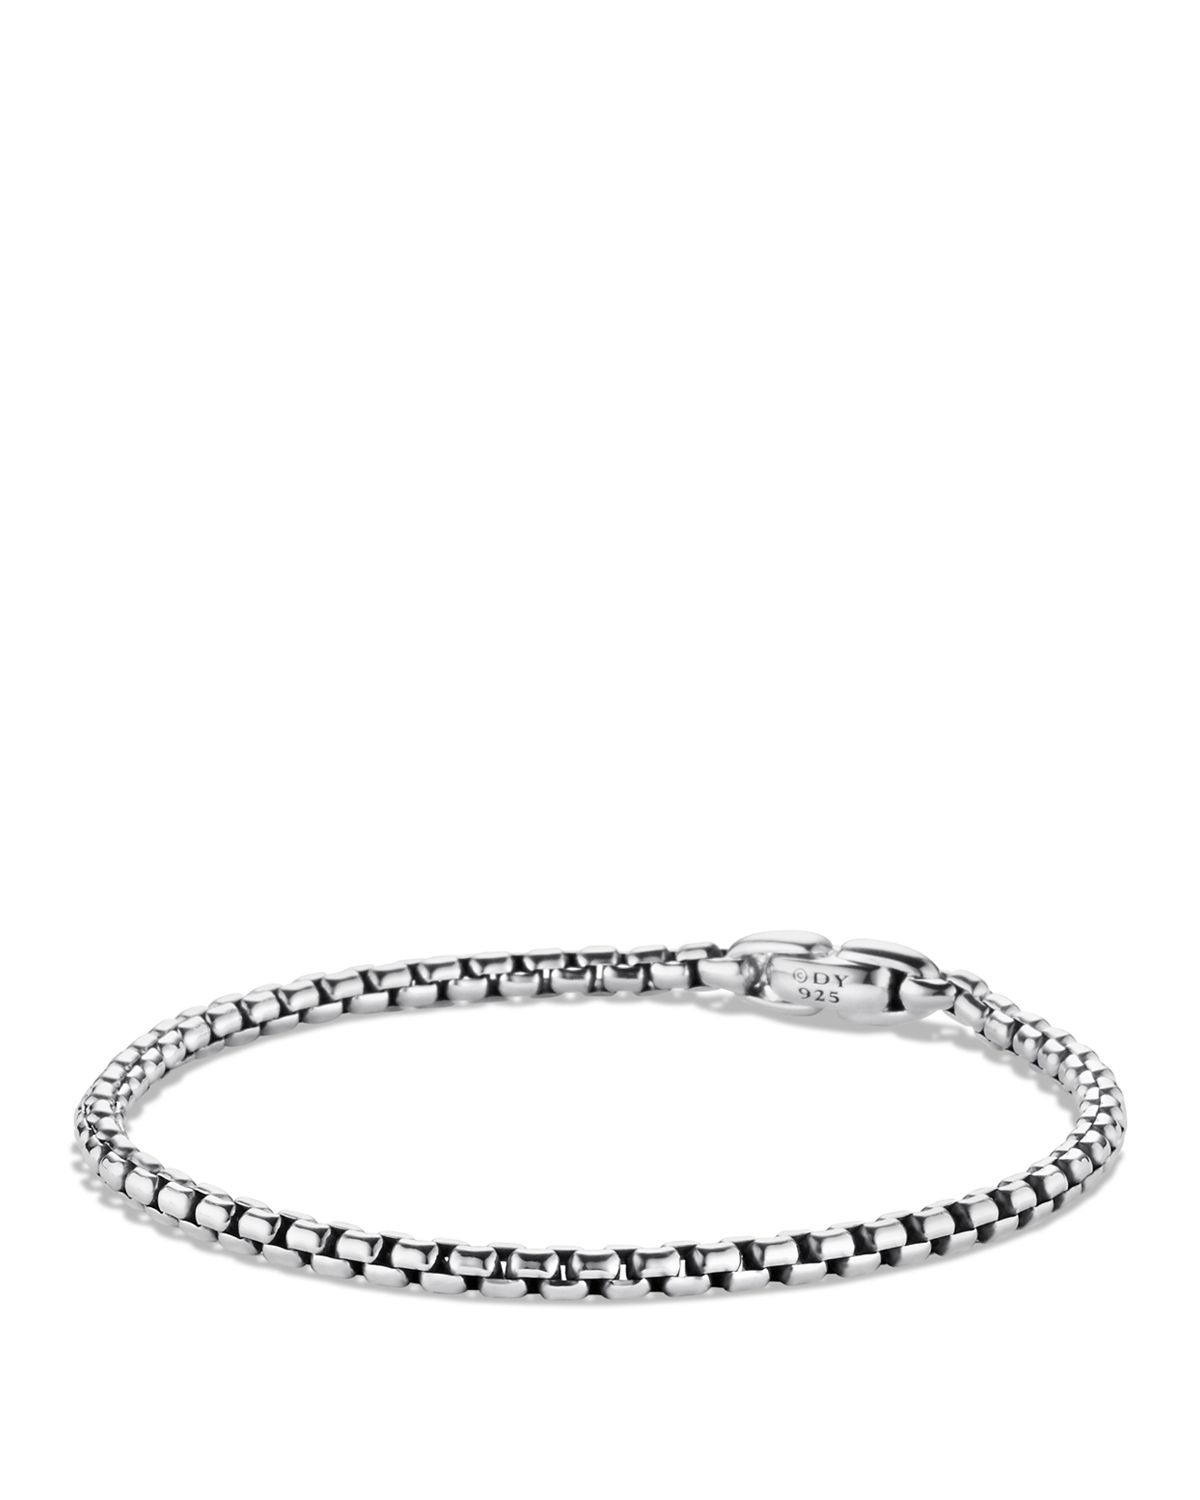 david-yurman-silver-medium-box-chain-bracelet-product-1-16918866-1-510893512-normal.jpeg